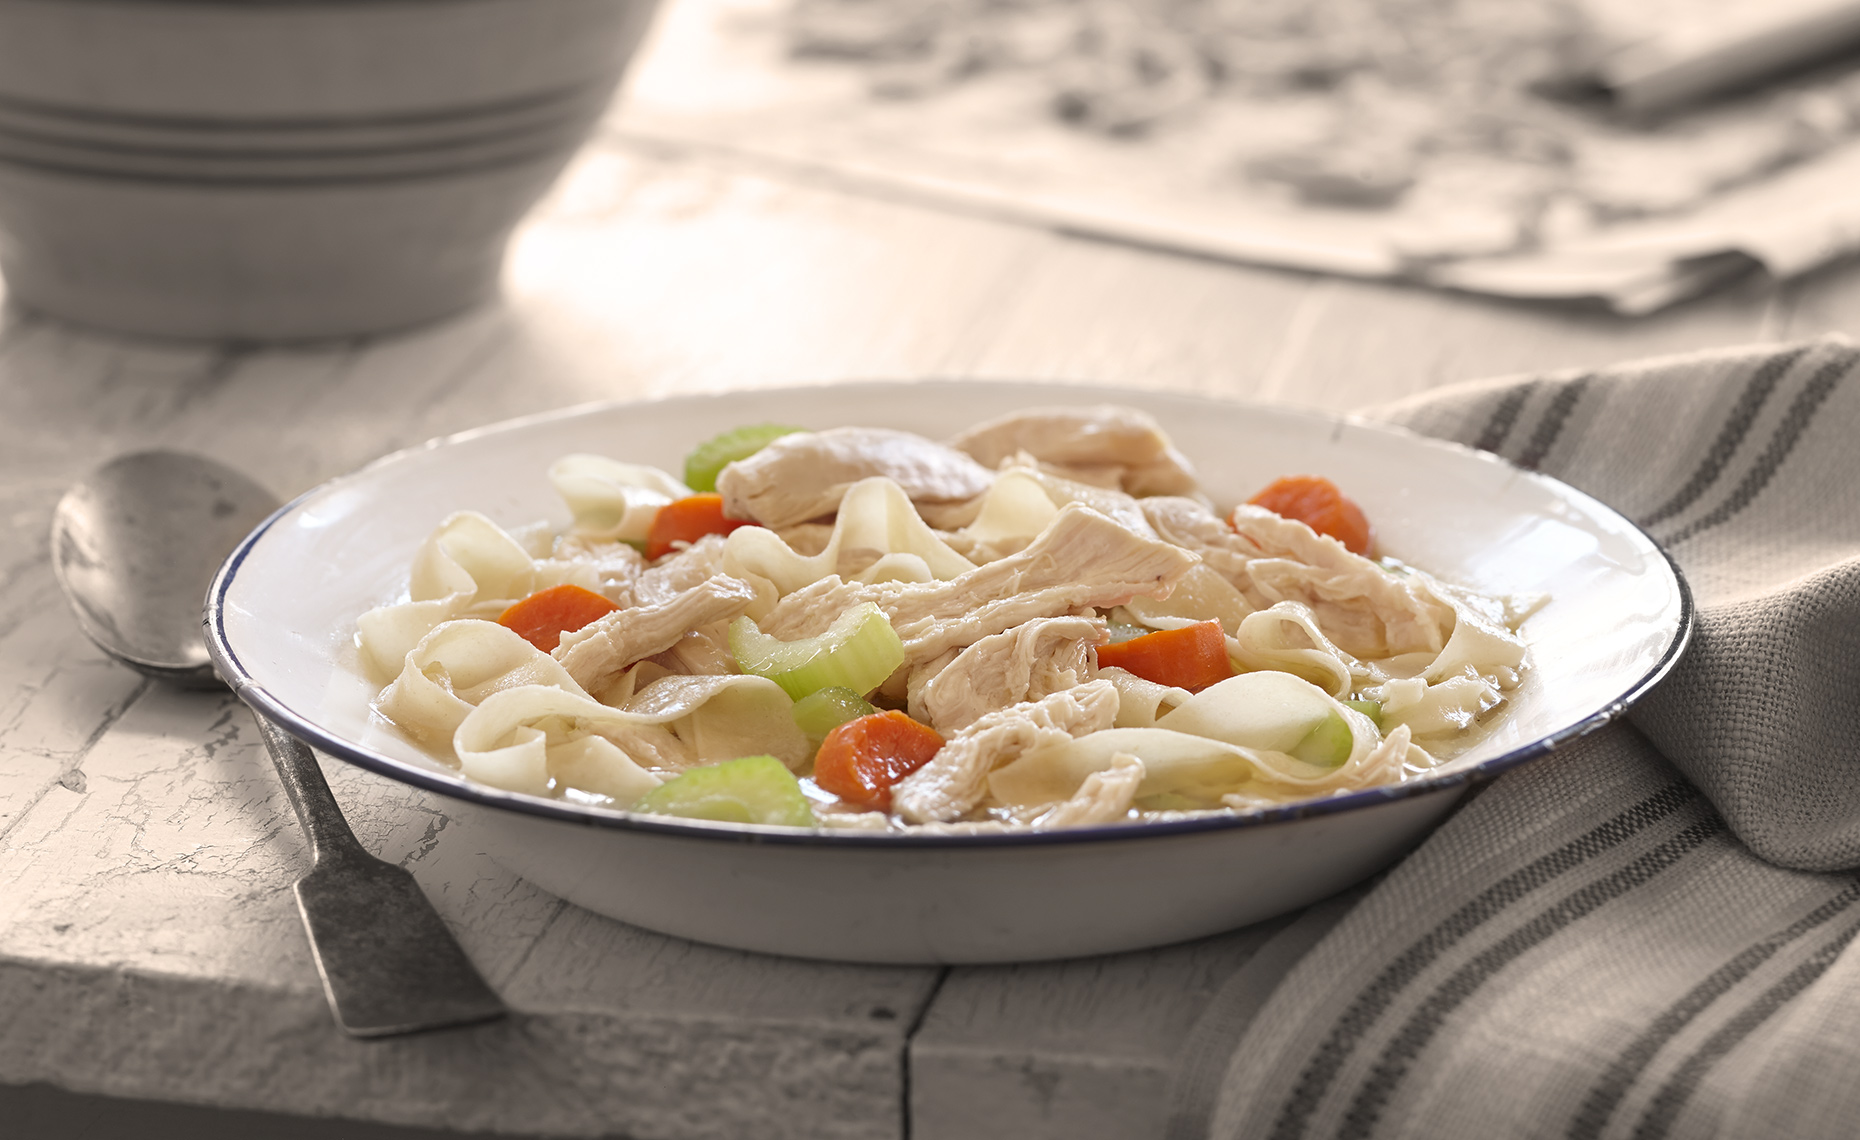 Food Photographer,  Chicken Photography, Poultry Photography | Pohuski Studios,  Chicken Noodle Stew